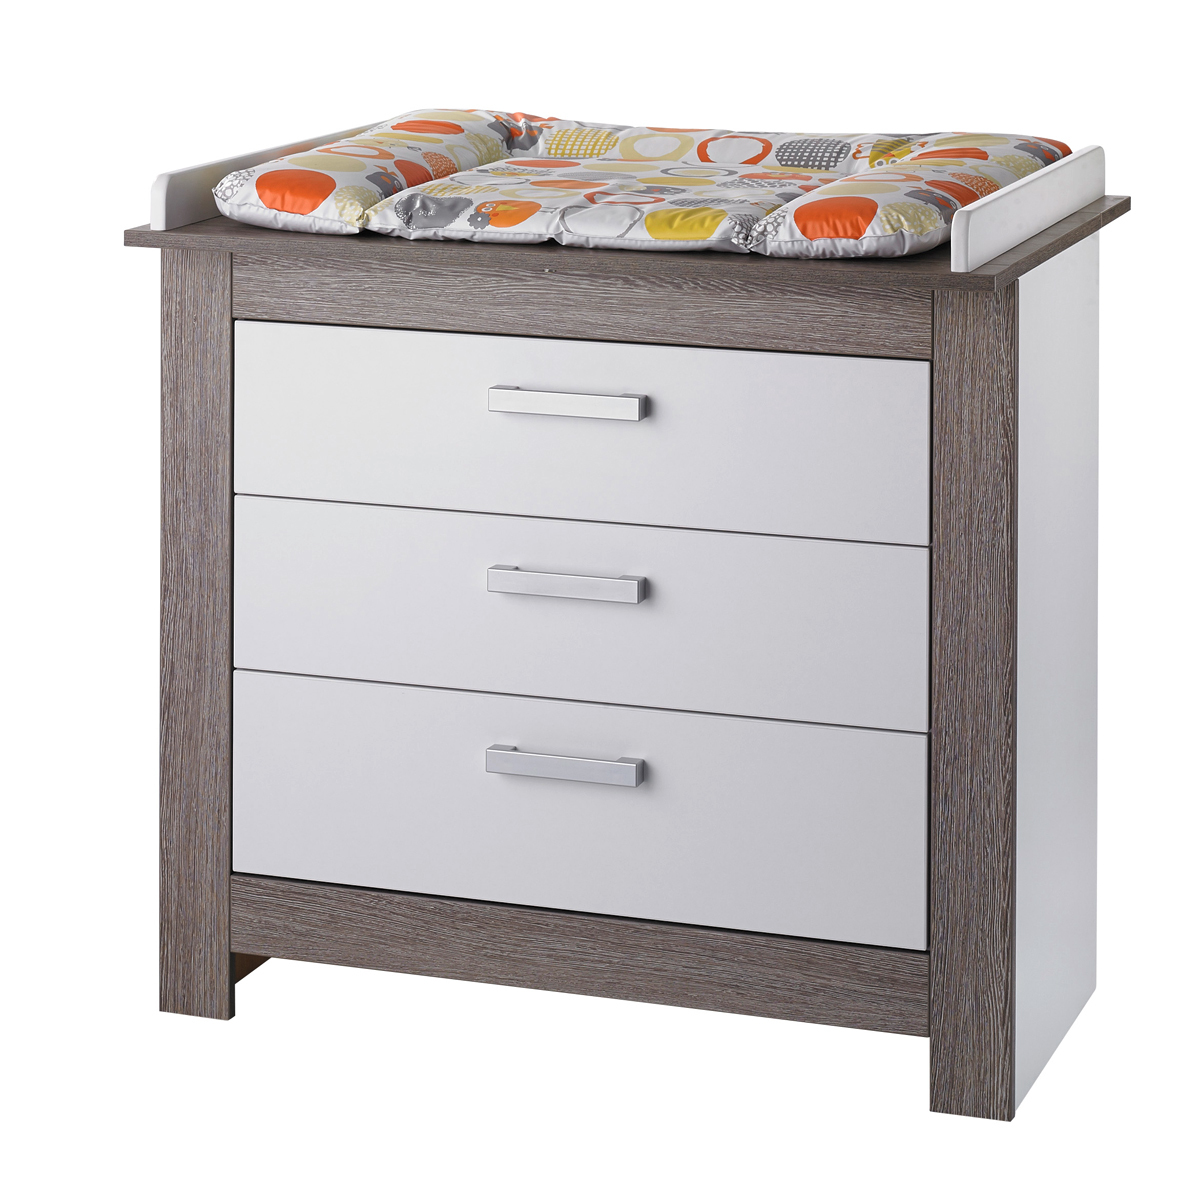 Geuther commode avec plan langer collection marlene - Plan a langer adaptable sur toute commode ...